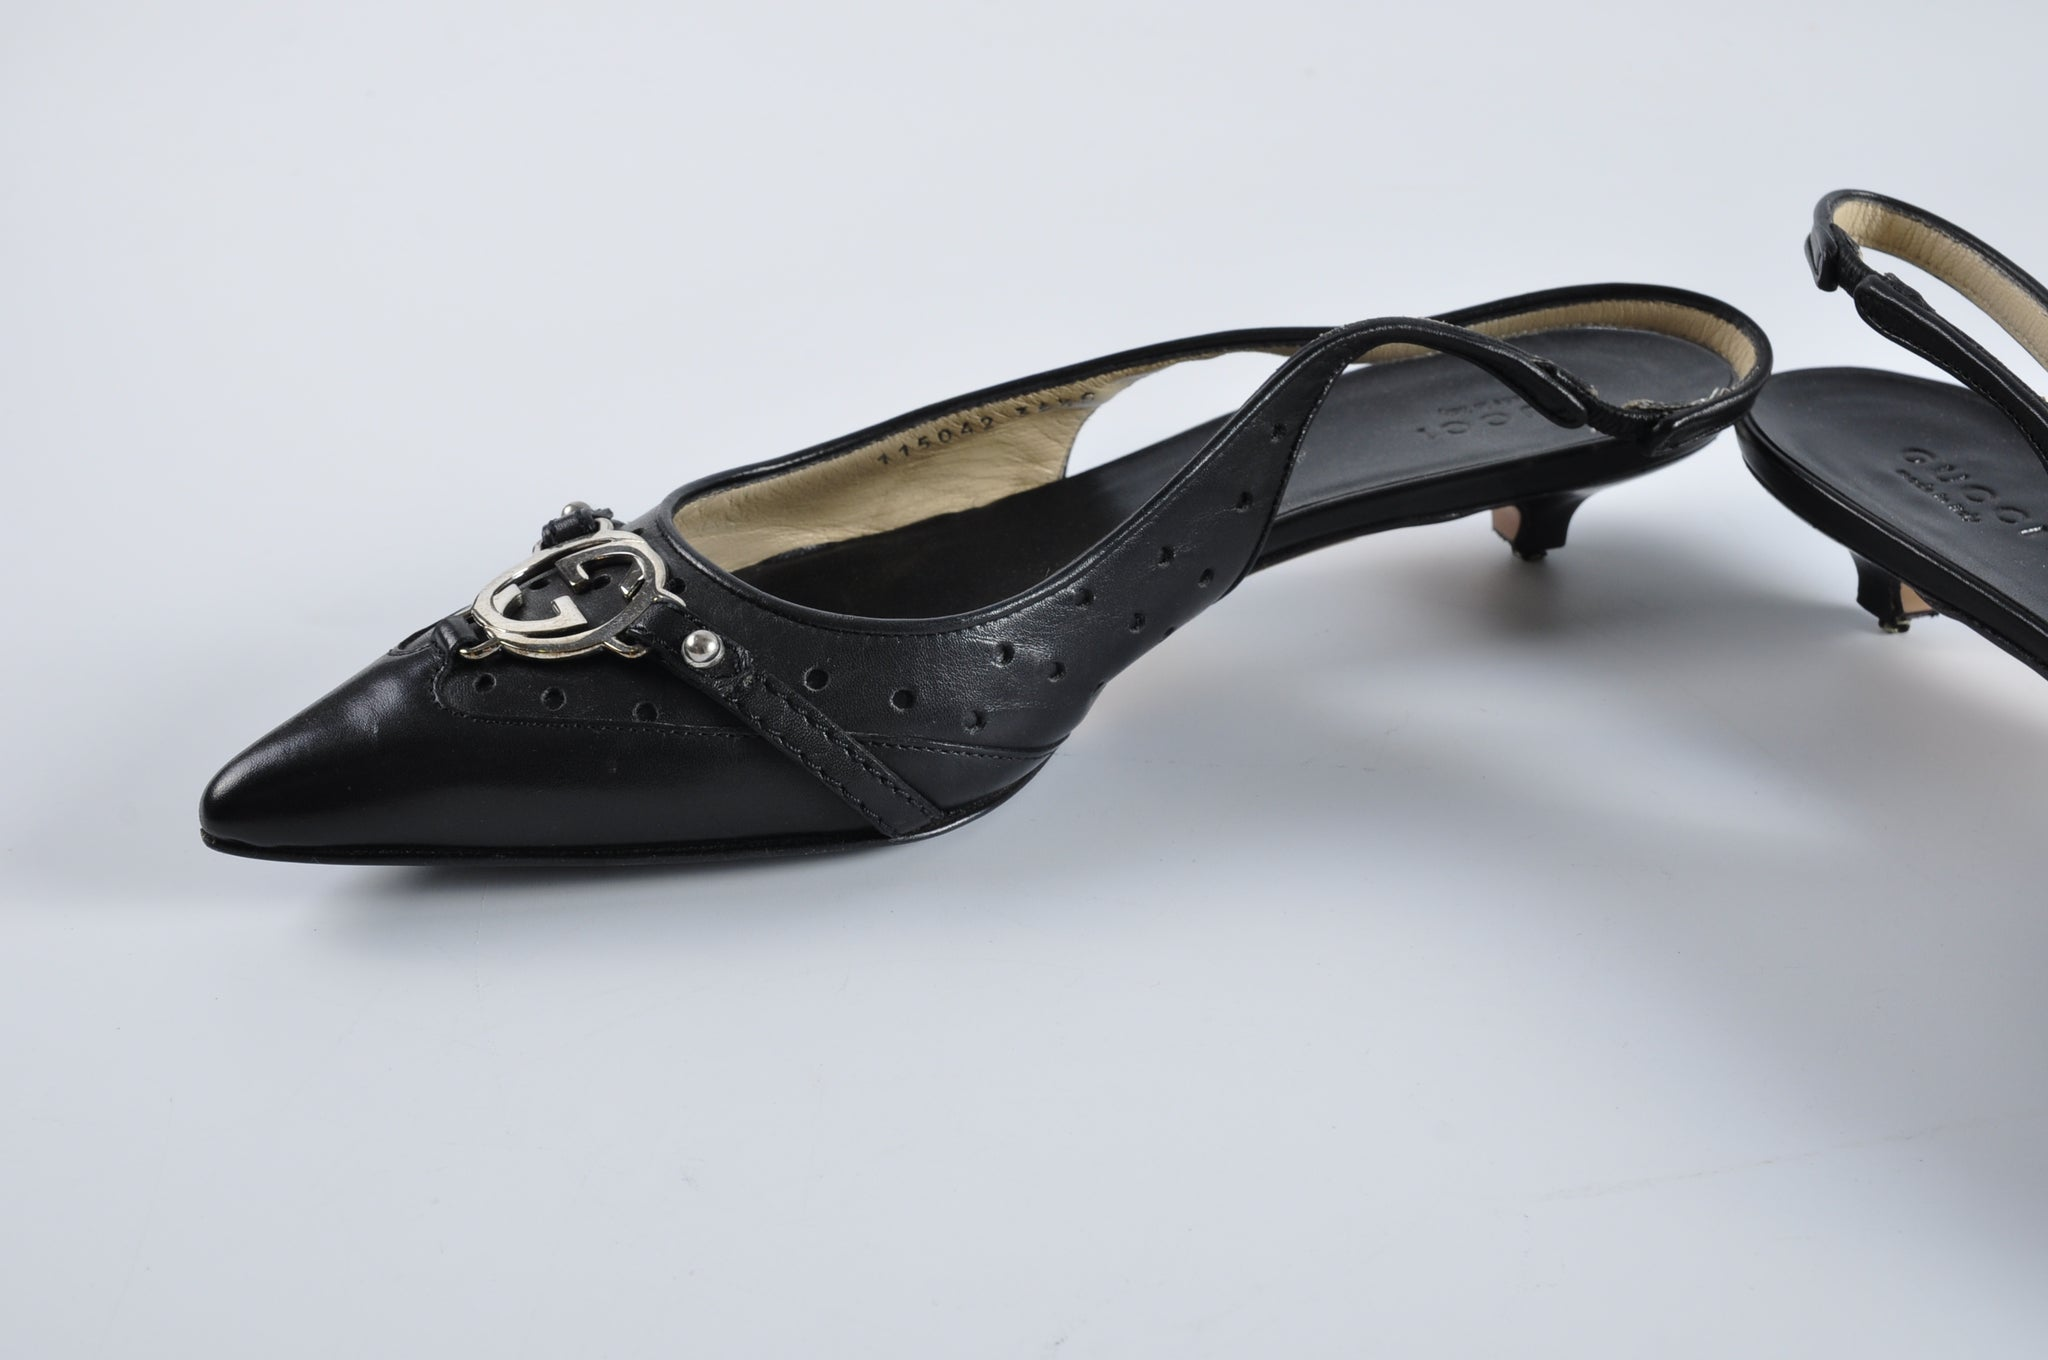 Gucci Black Perforated Leather Kitten Slingback Heels - Size 36